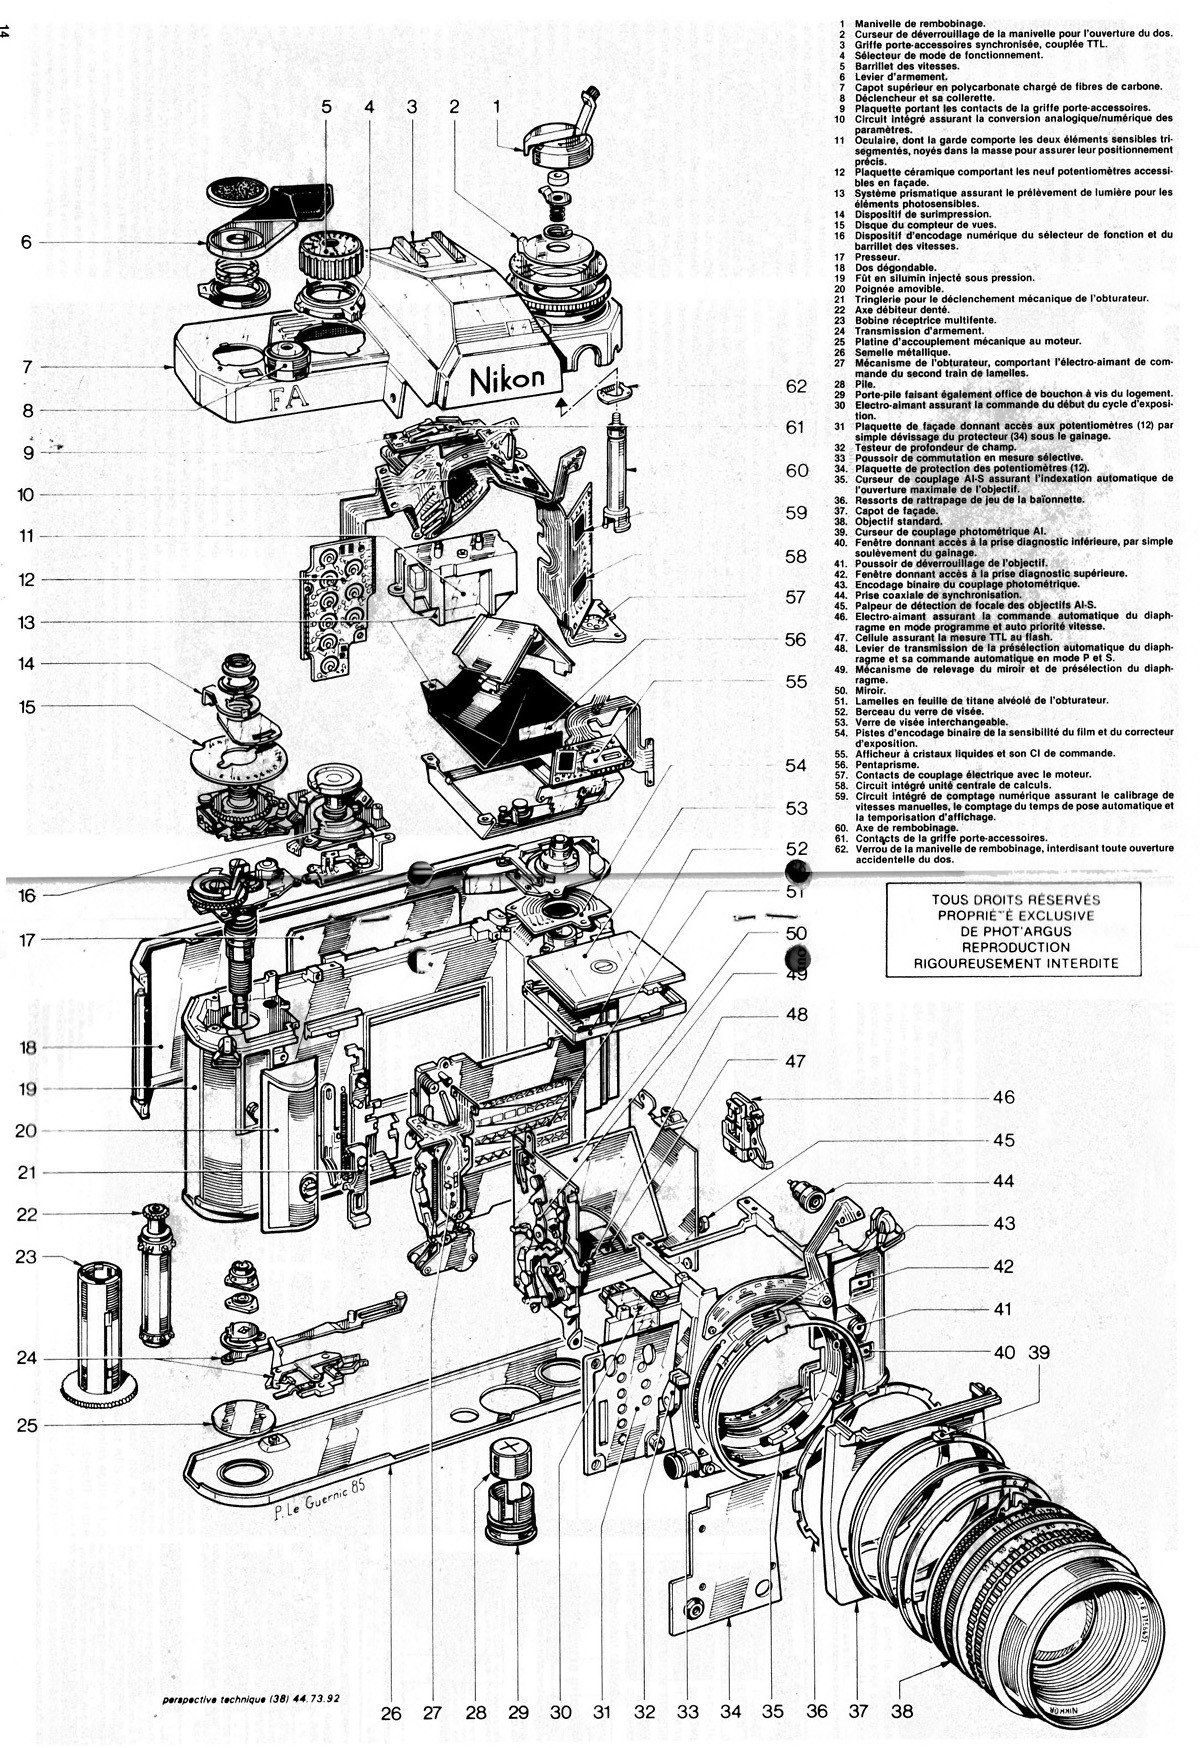 1911 Exploded Diagram R2 Free Vehicle Wiring Diagrams Pistol Also With Colt Parts These Schematics Offer An View Of Old Nikon Slr Cameras Rh Pinterest Co Uk Schematic Drawing